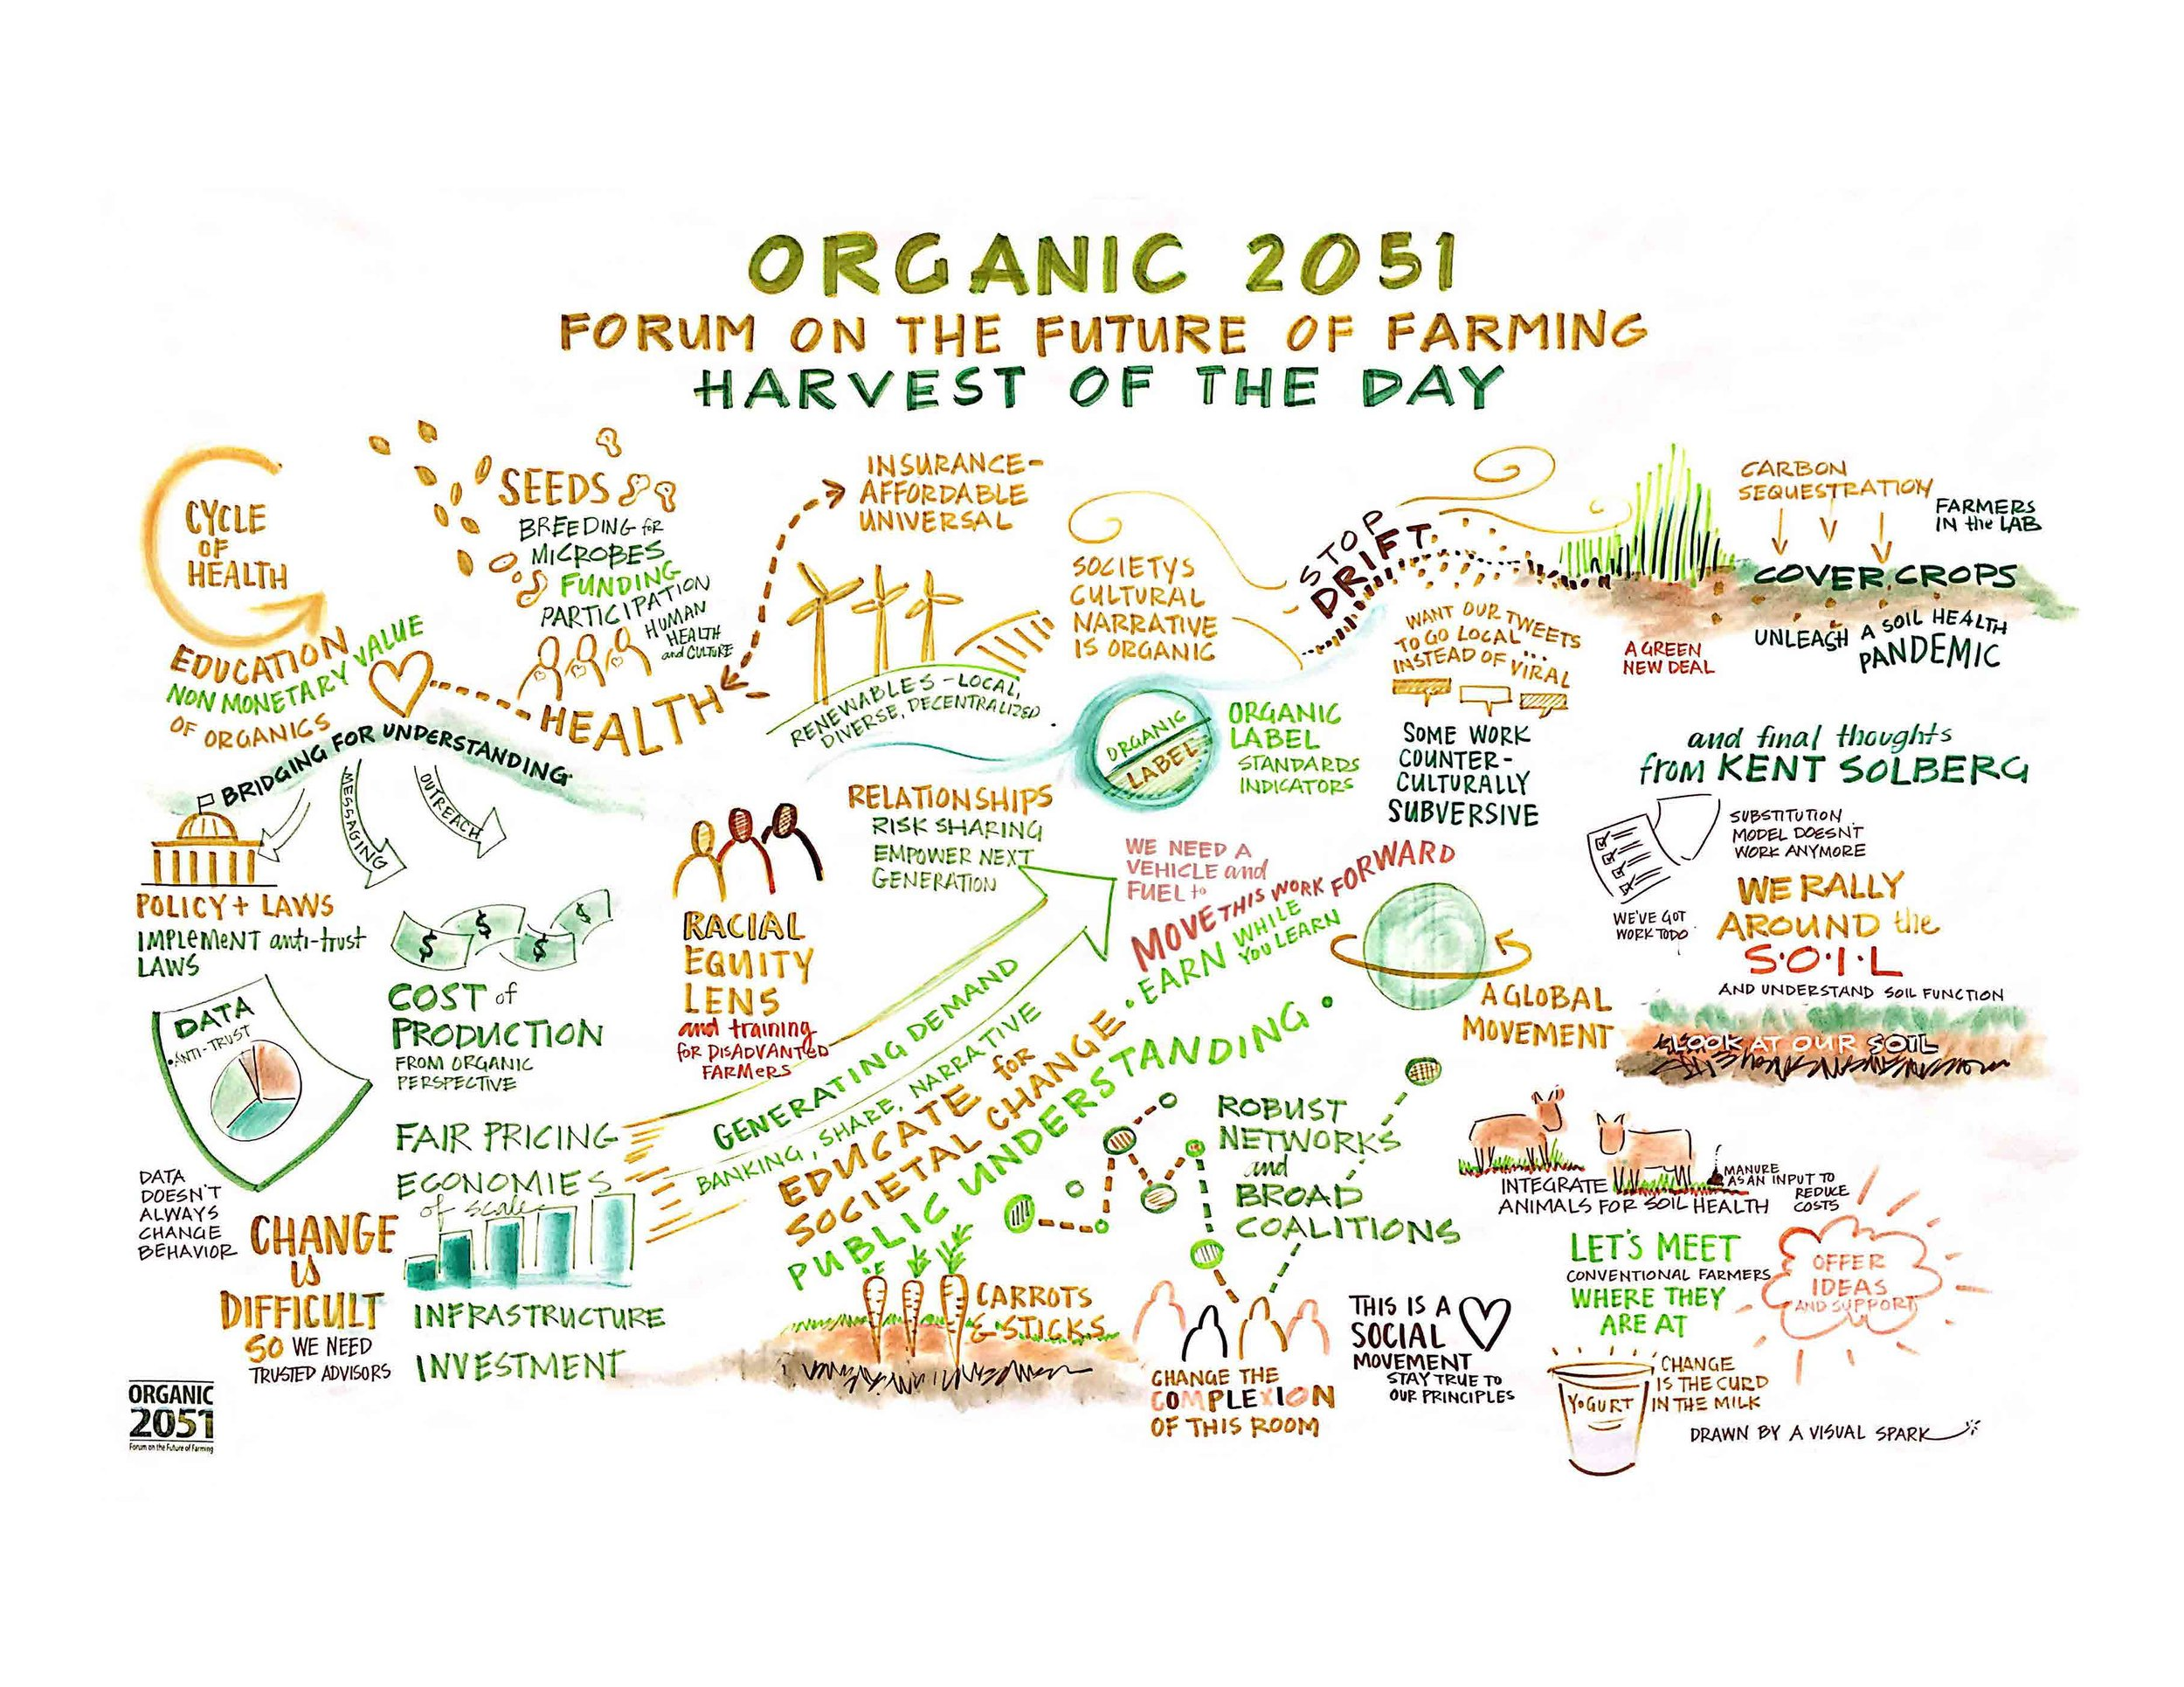 Harvest Organic 2051, graphic recording  by A Visual Spark